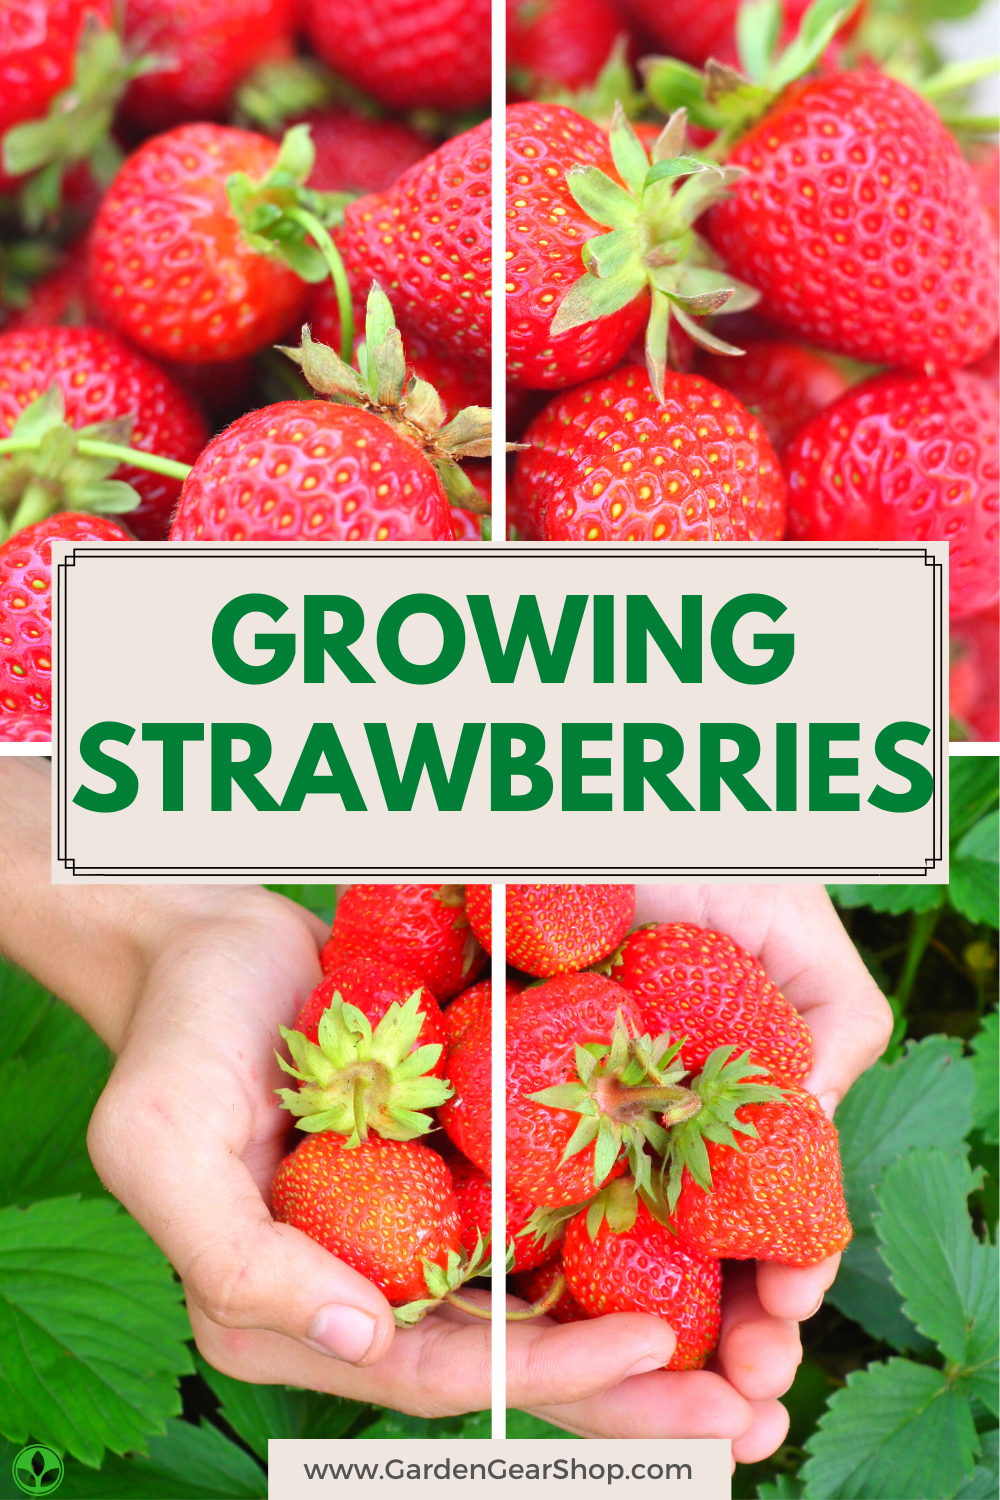 How To Grow Strawberries In 2020 Growing Strawberries Potted Strawberry Plants Strawberry Plant Care